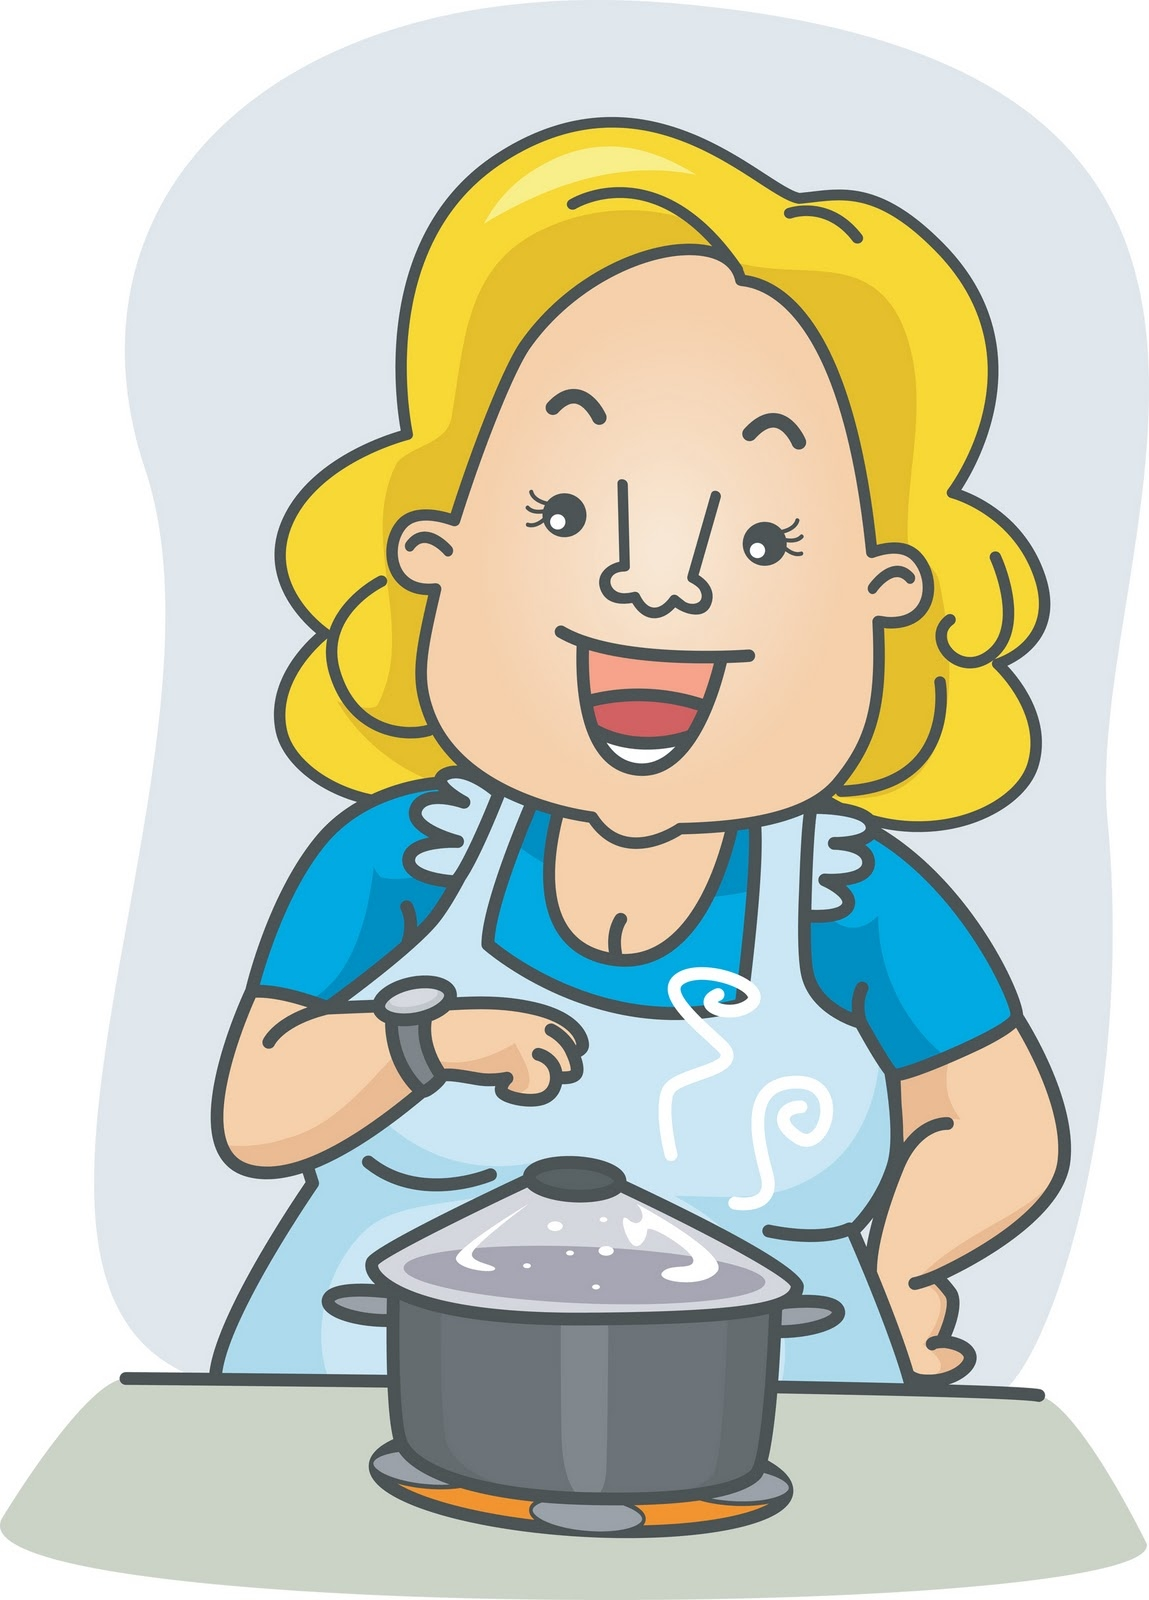 Mother clip art library. Cooking clipart motherr